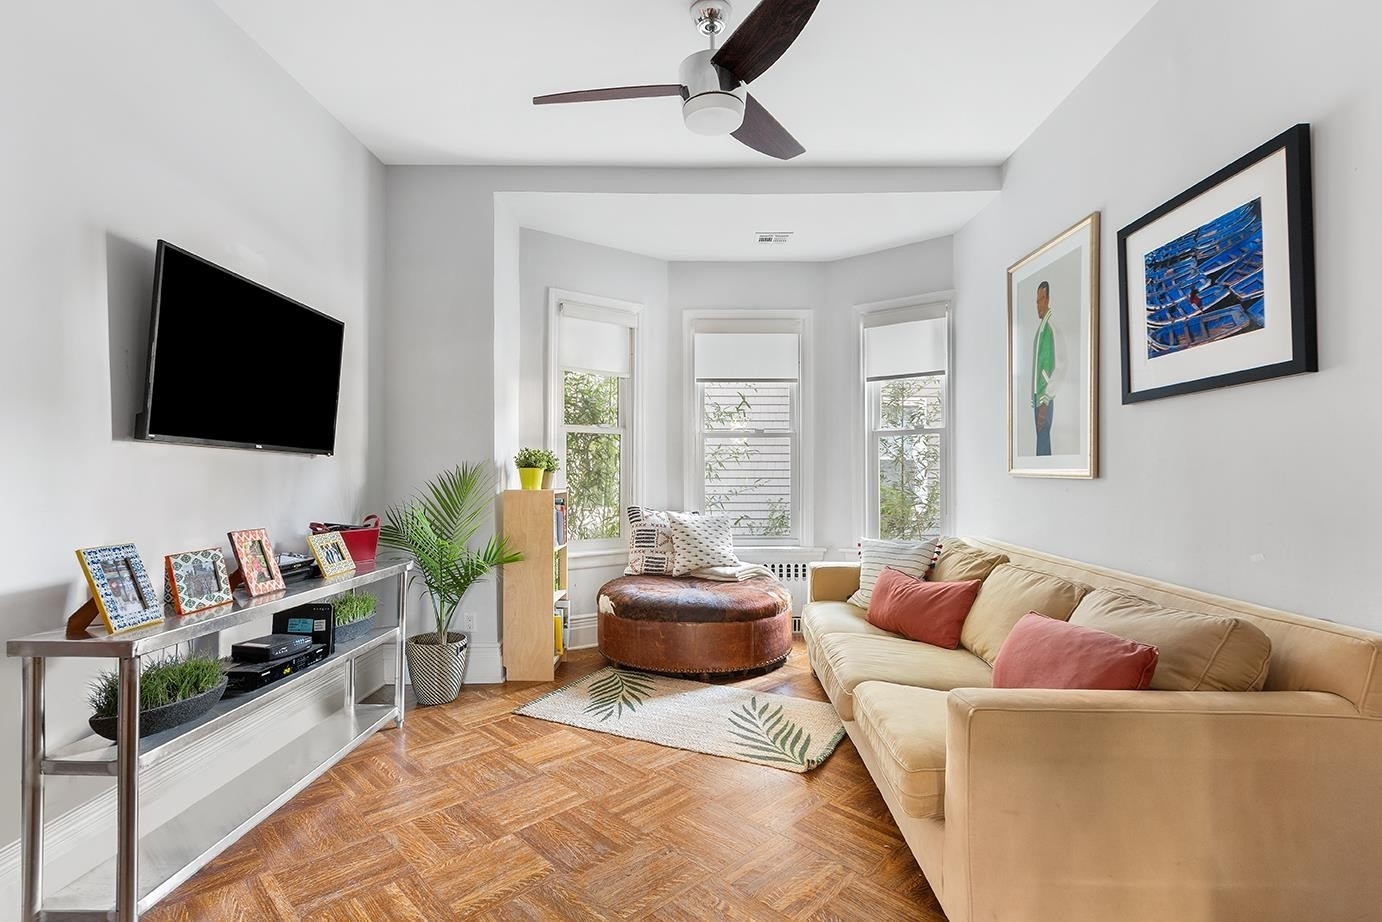 7. Single Family Townhouse for Sale at Ditmas Park, Brooklyn, NY 11218